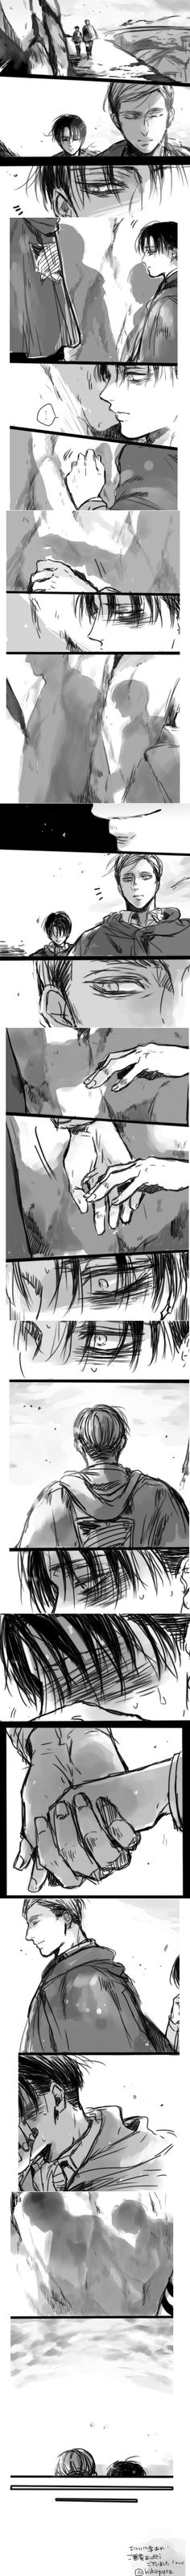 SnK Erwin x Levi by Hikapura on twitter. This speaks right out of my heart x)